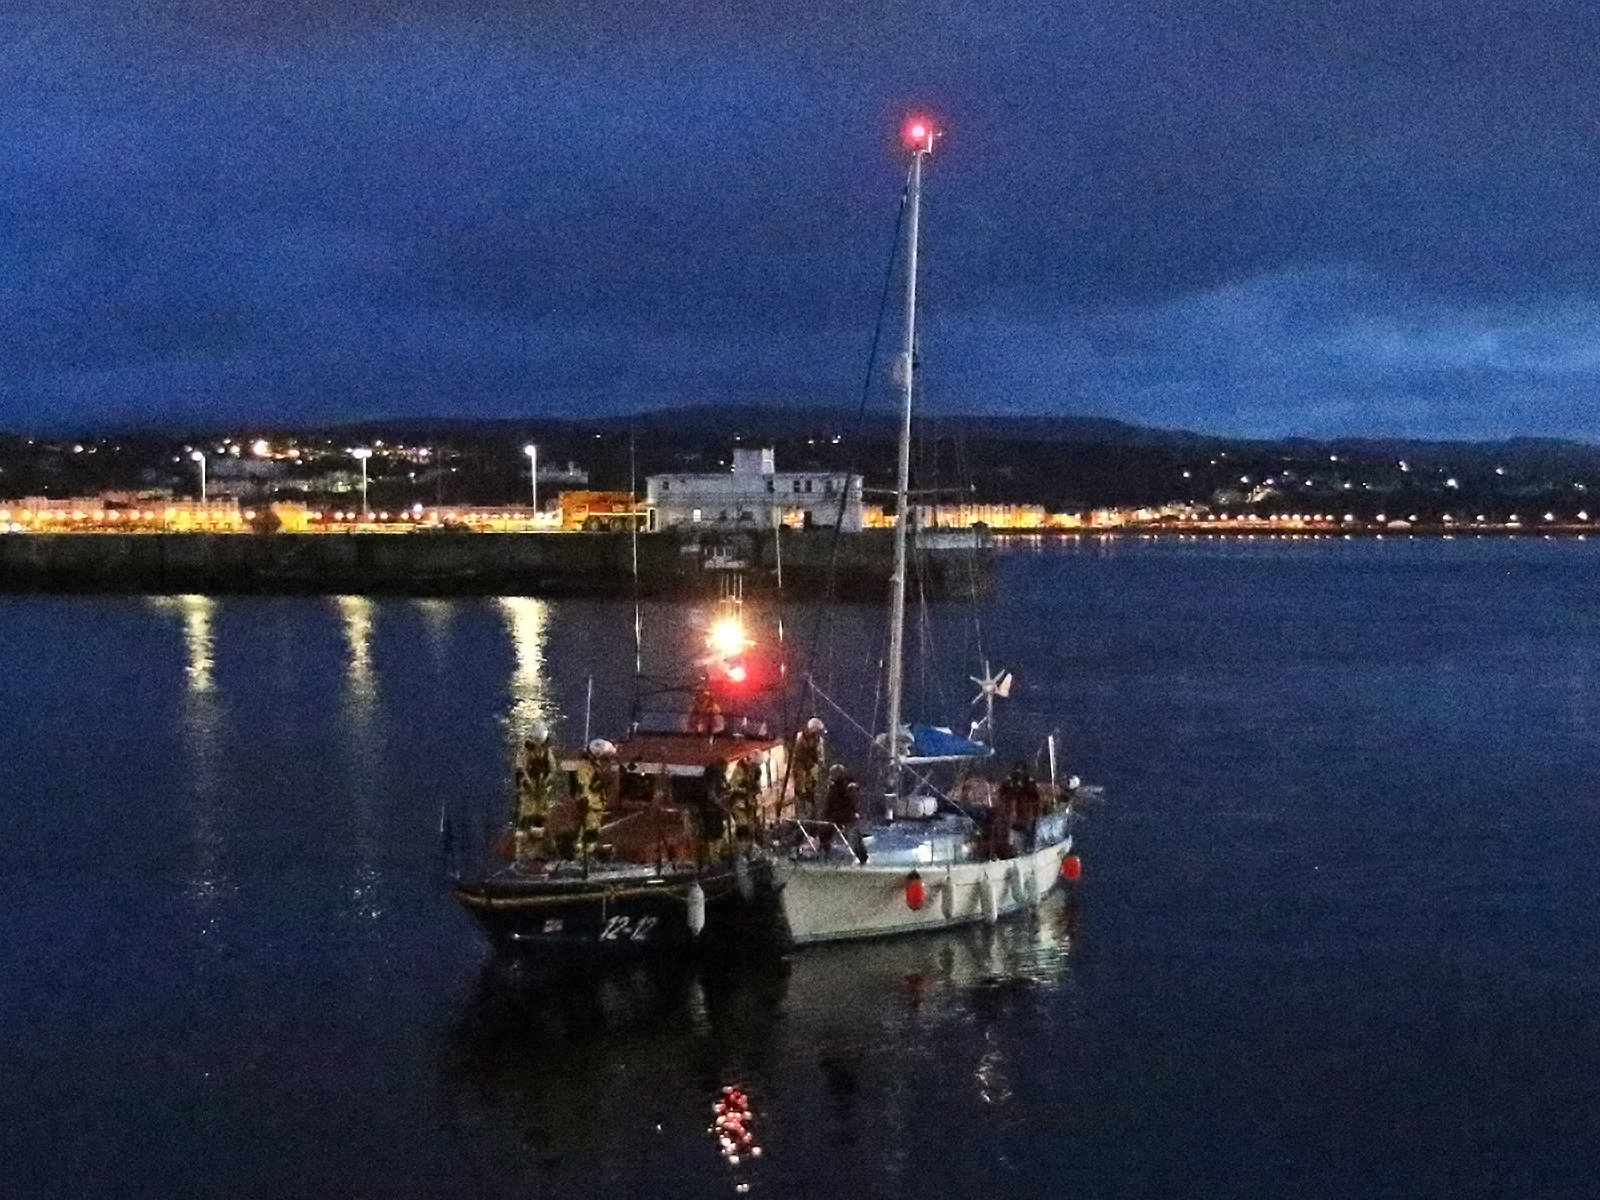 Douglas all-weather lifeboat Marine Engineer with casualty vessel returning to harbour